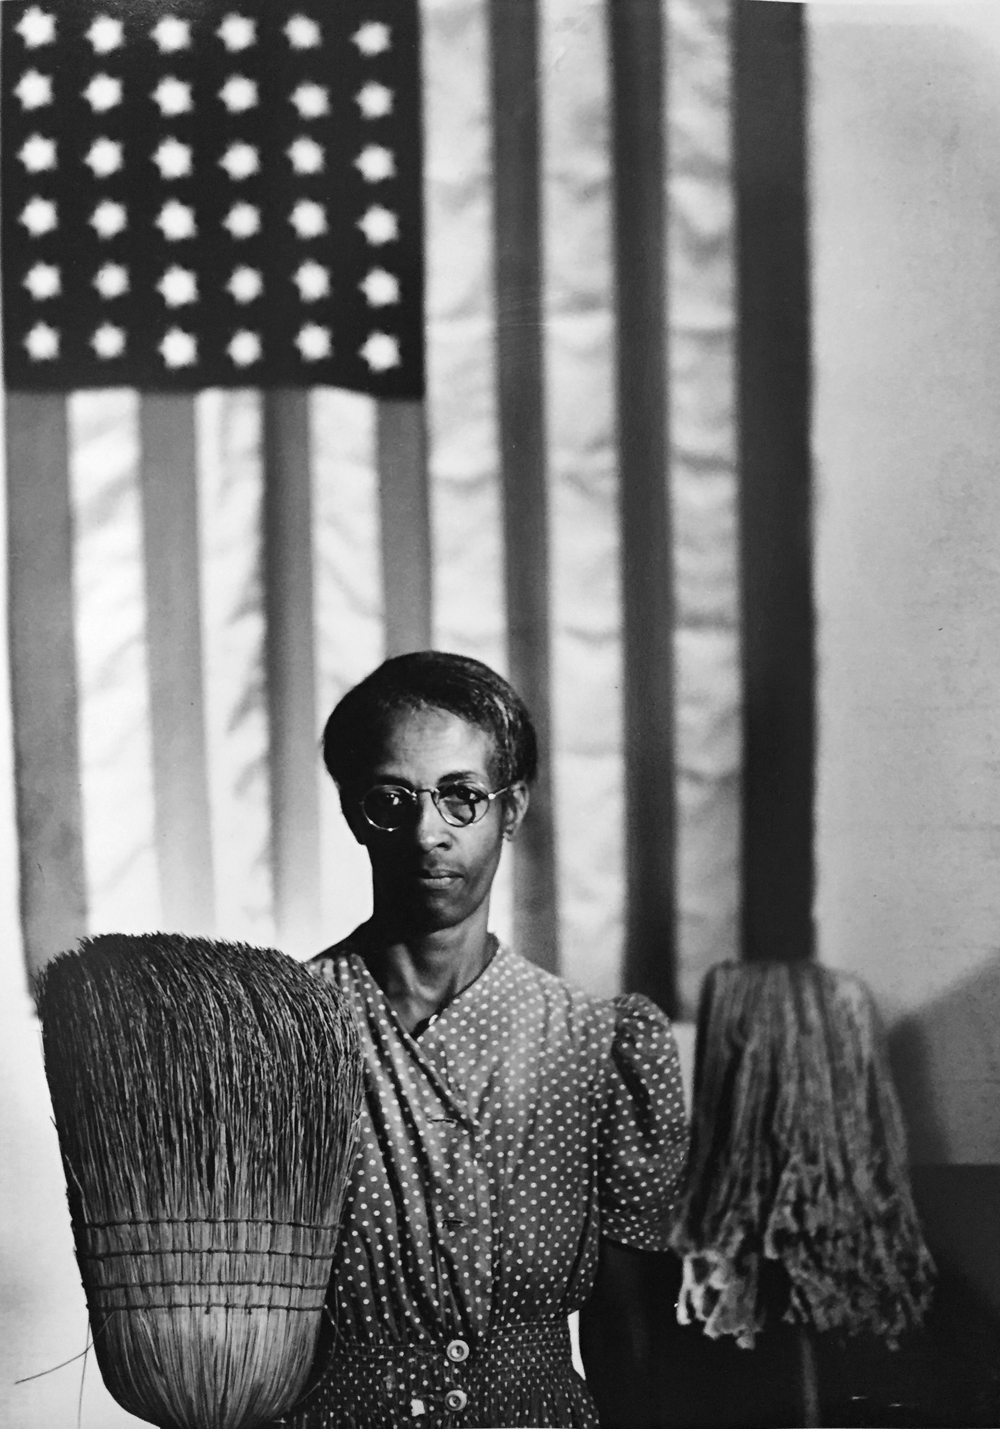 Gordon Parks, American Gothic, Ella Watson, Washington DC, 1942, gelatin silver print, 14 x 11 inches, signed by artist (SOLD)